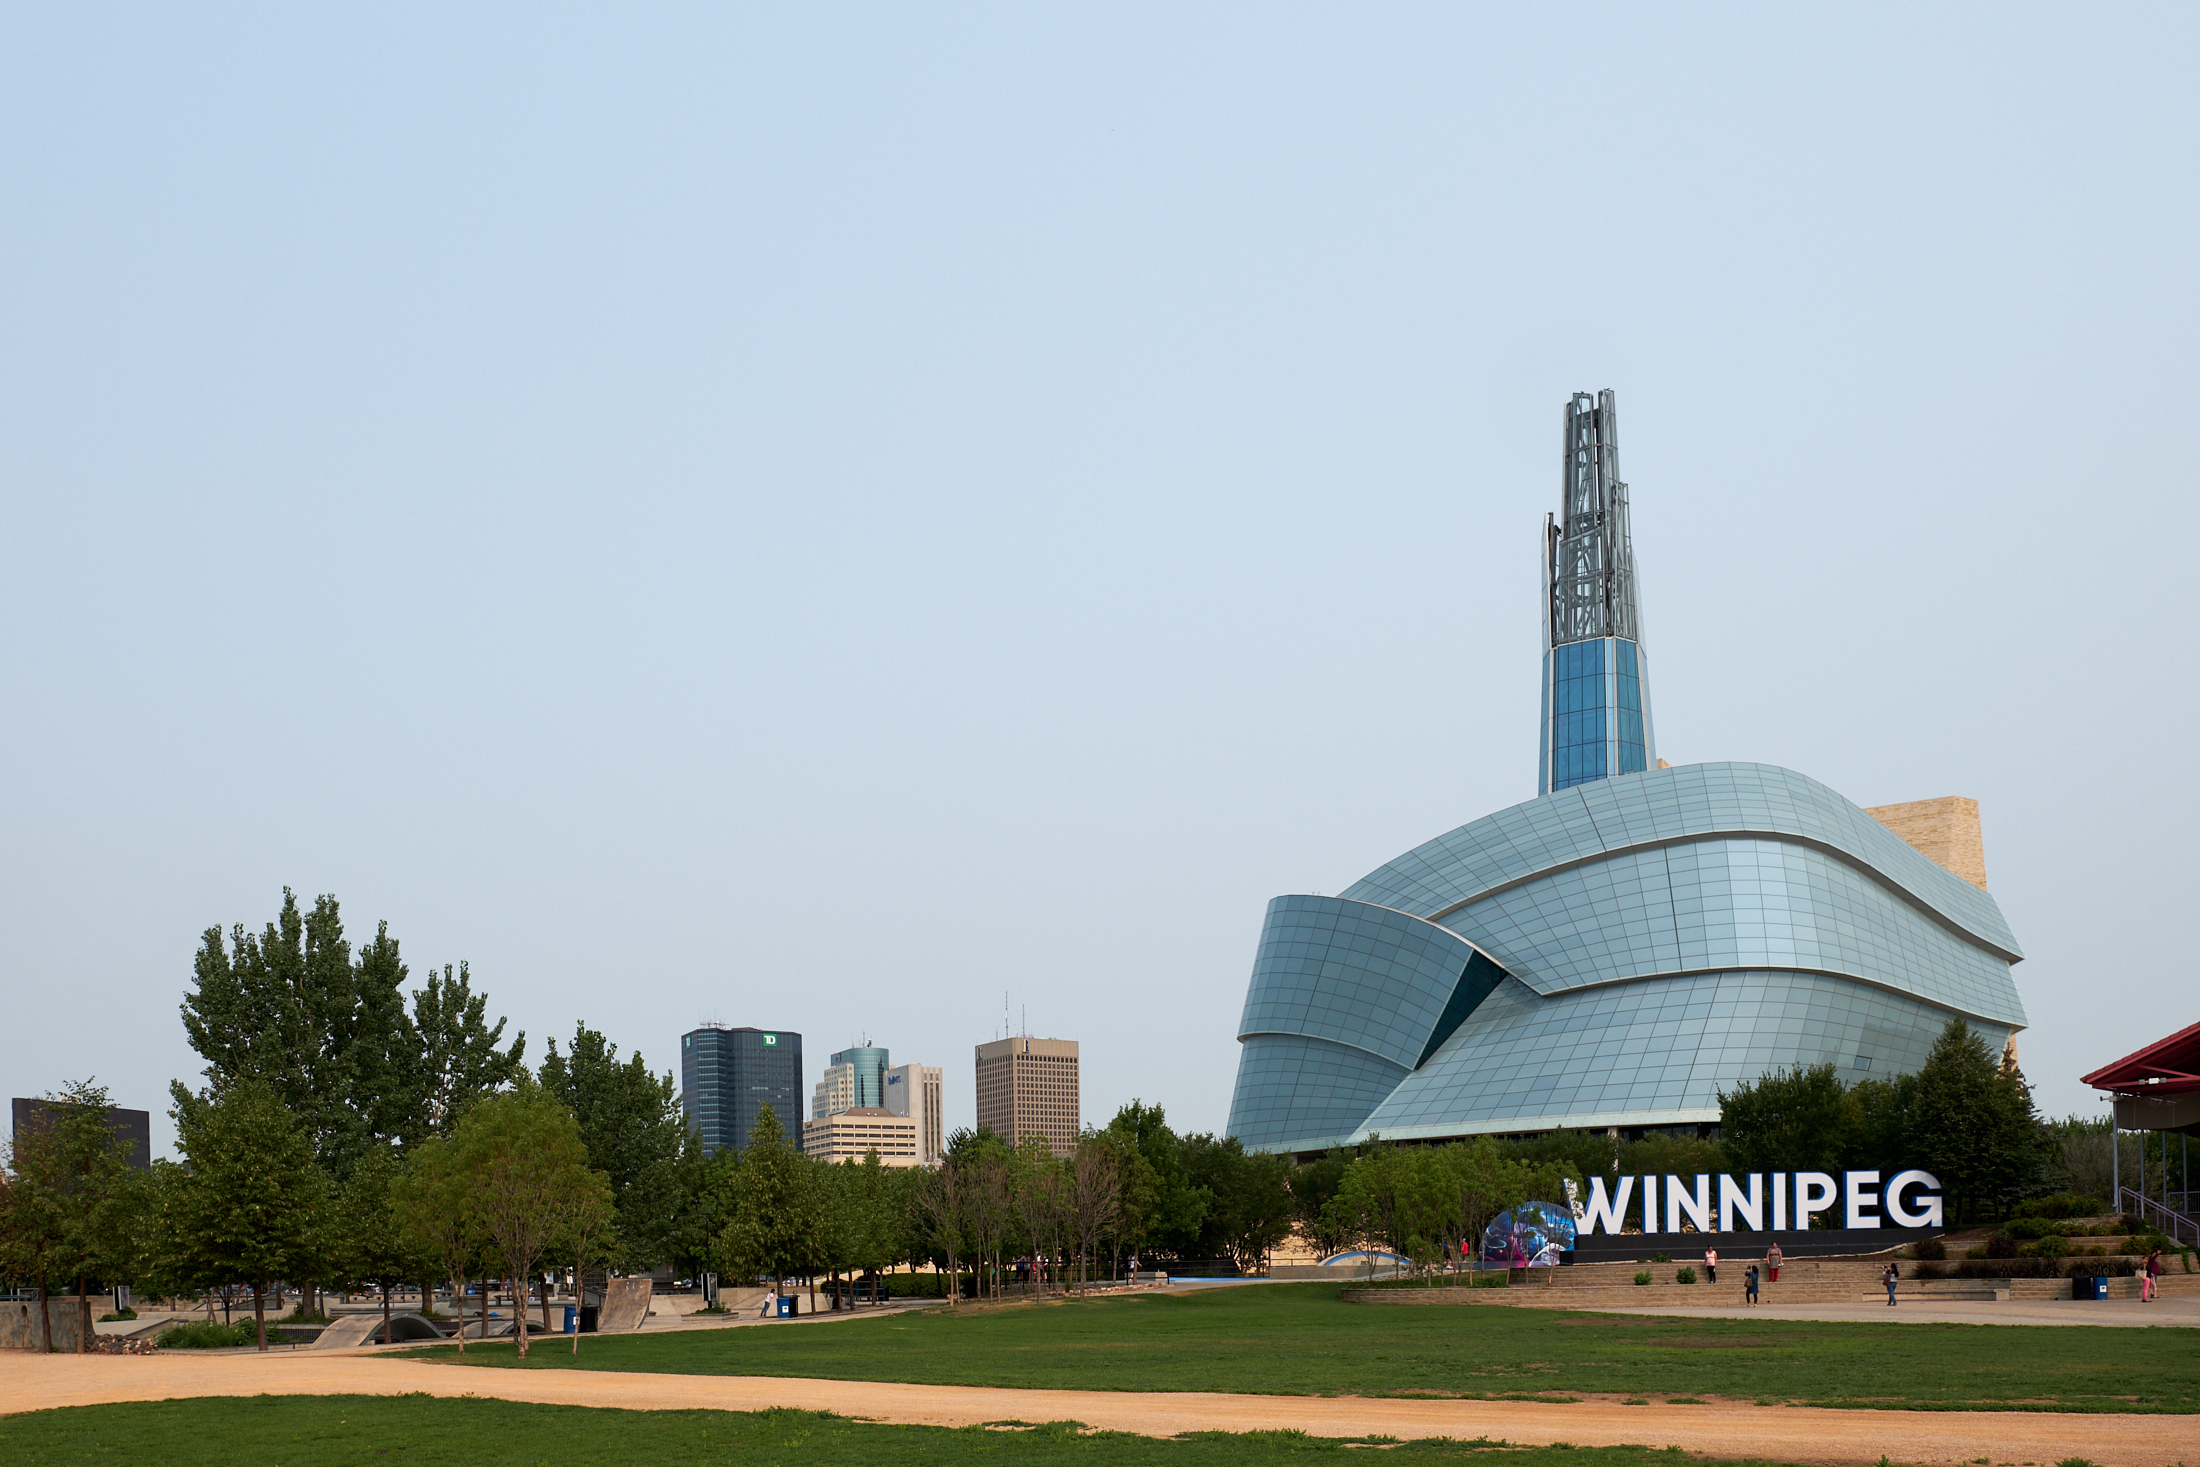 A cityscape of Winnipeg, Manitoba, where President Russell M. Nelson stopped during a three-day trip to central and eastern Canada Aug. 17-19.